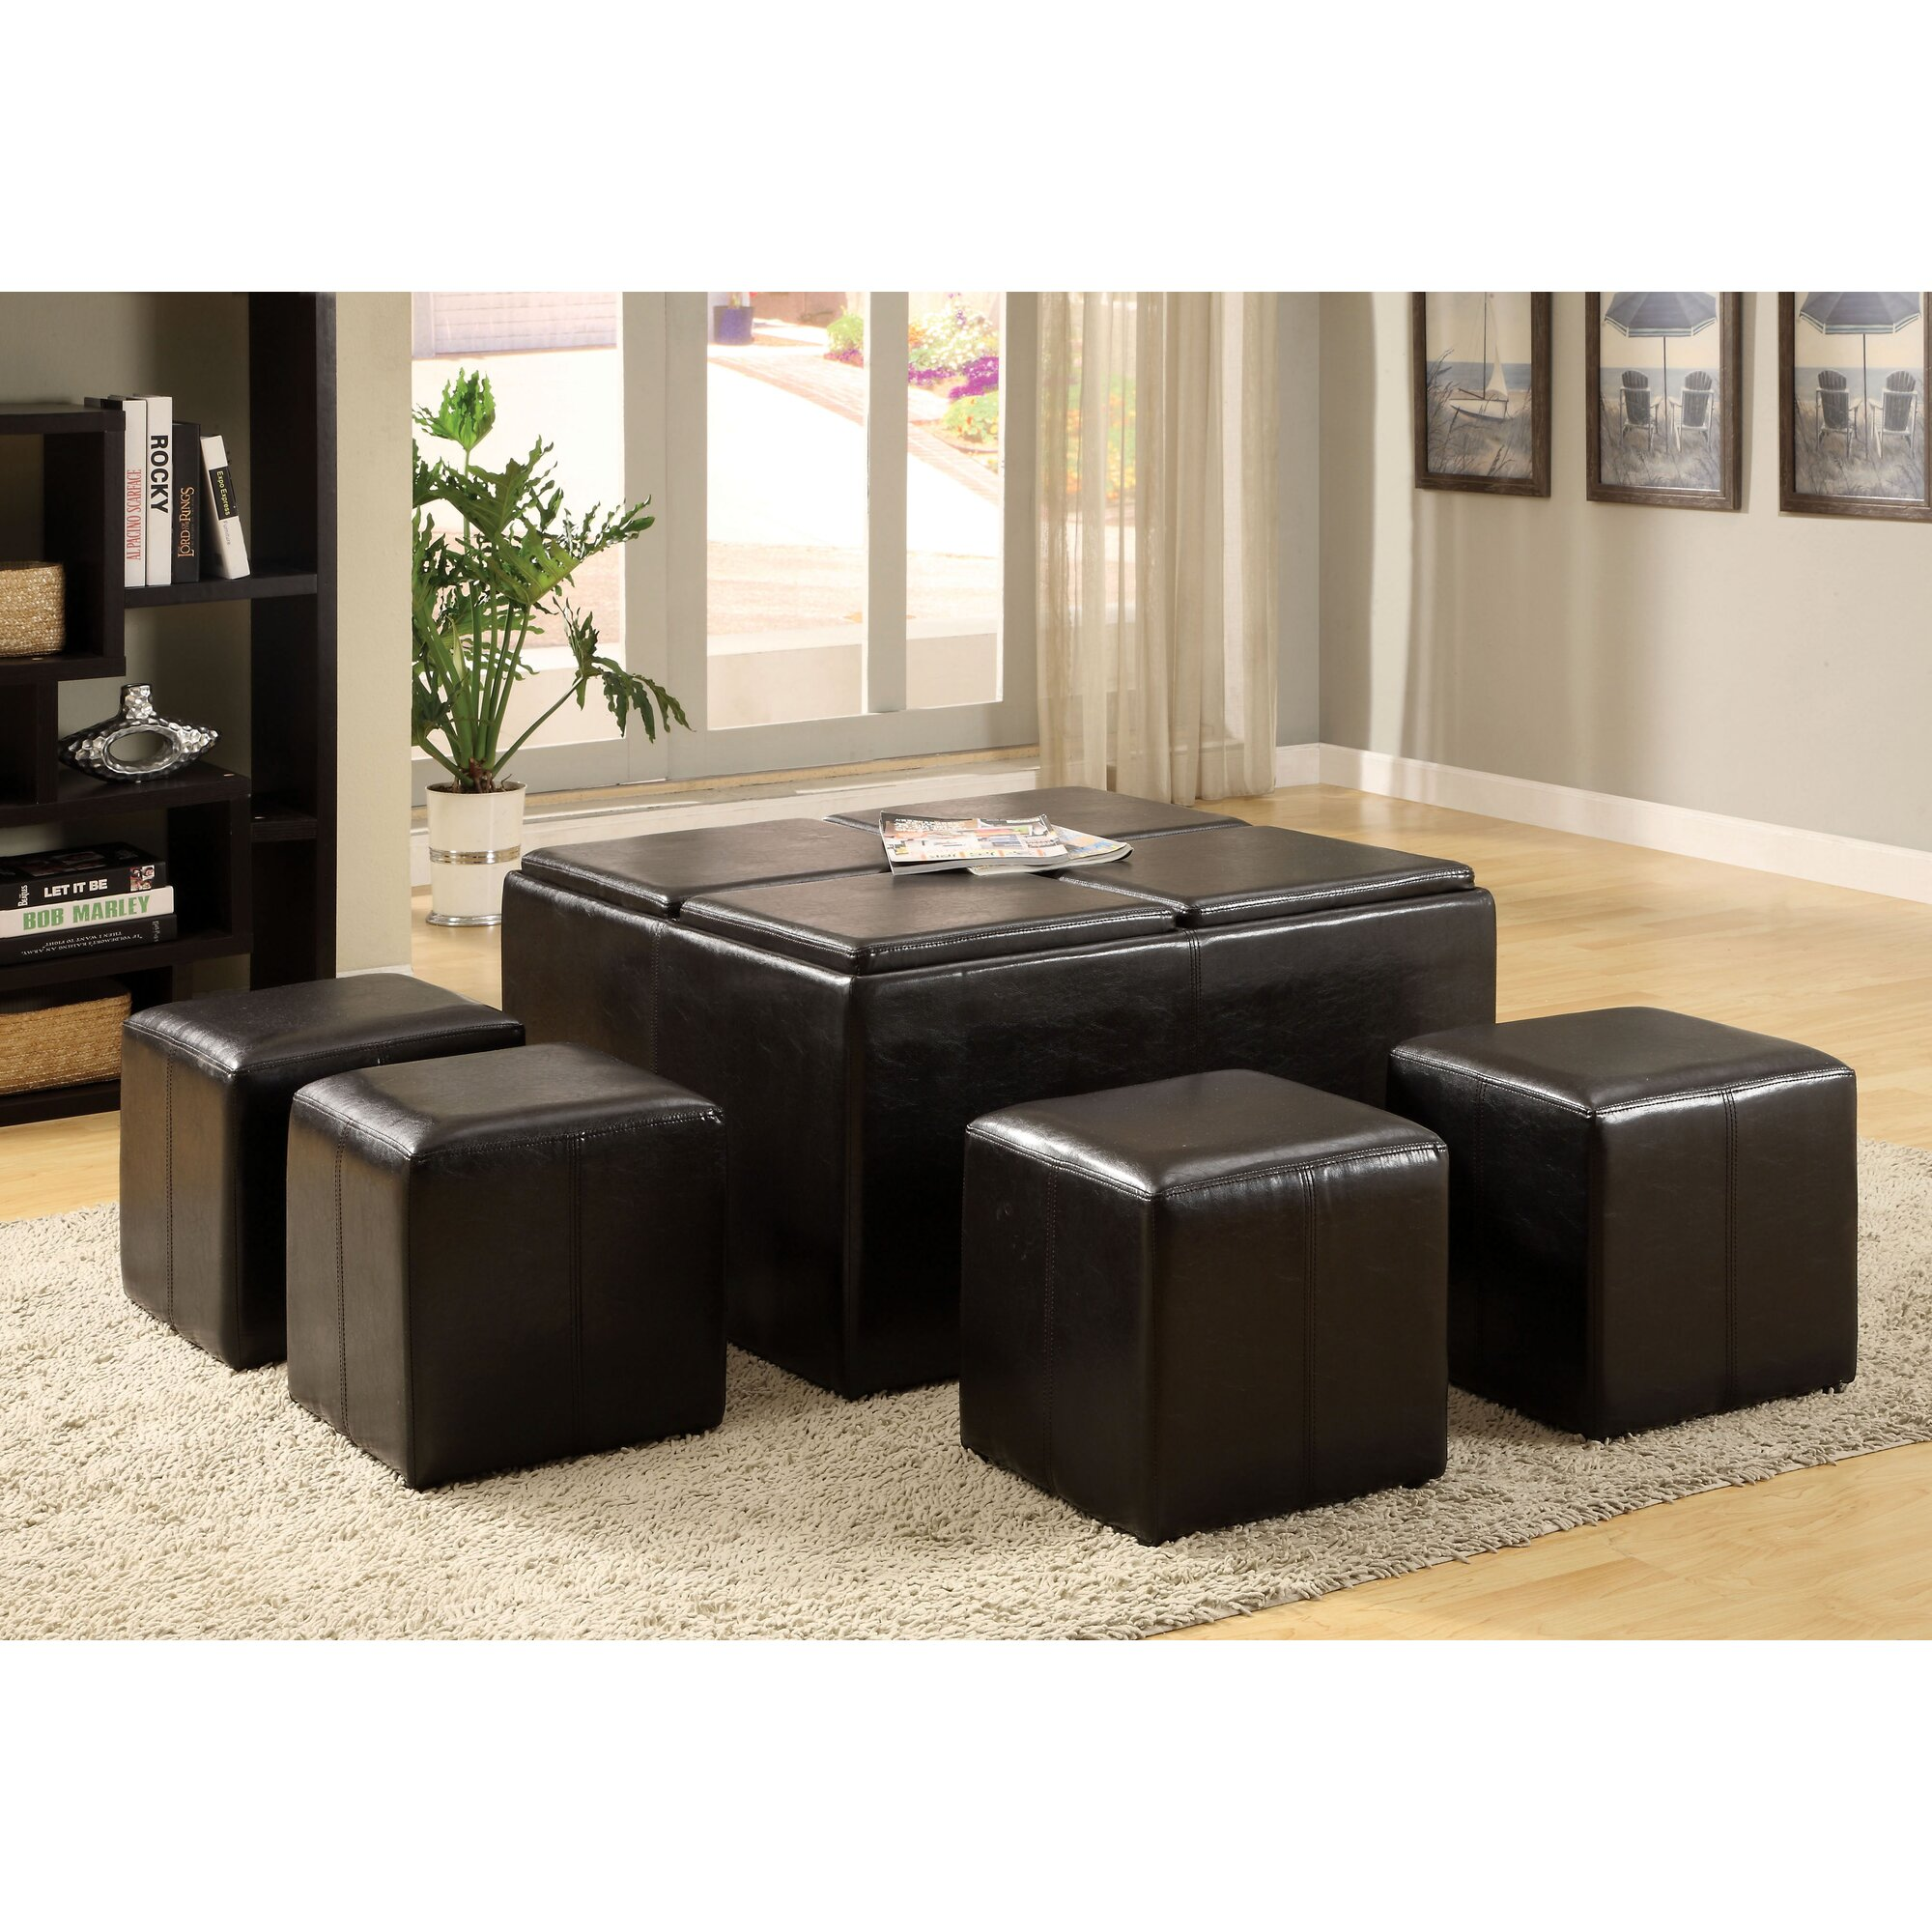 Coffee table with nesting ottomans - 5 Piece Verano Coffee Table Ottoman Set